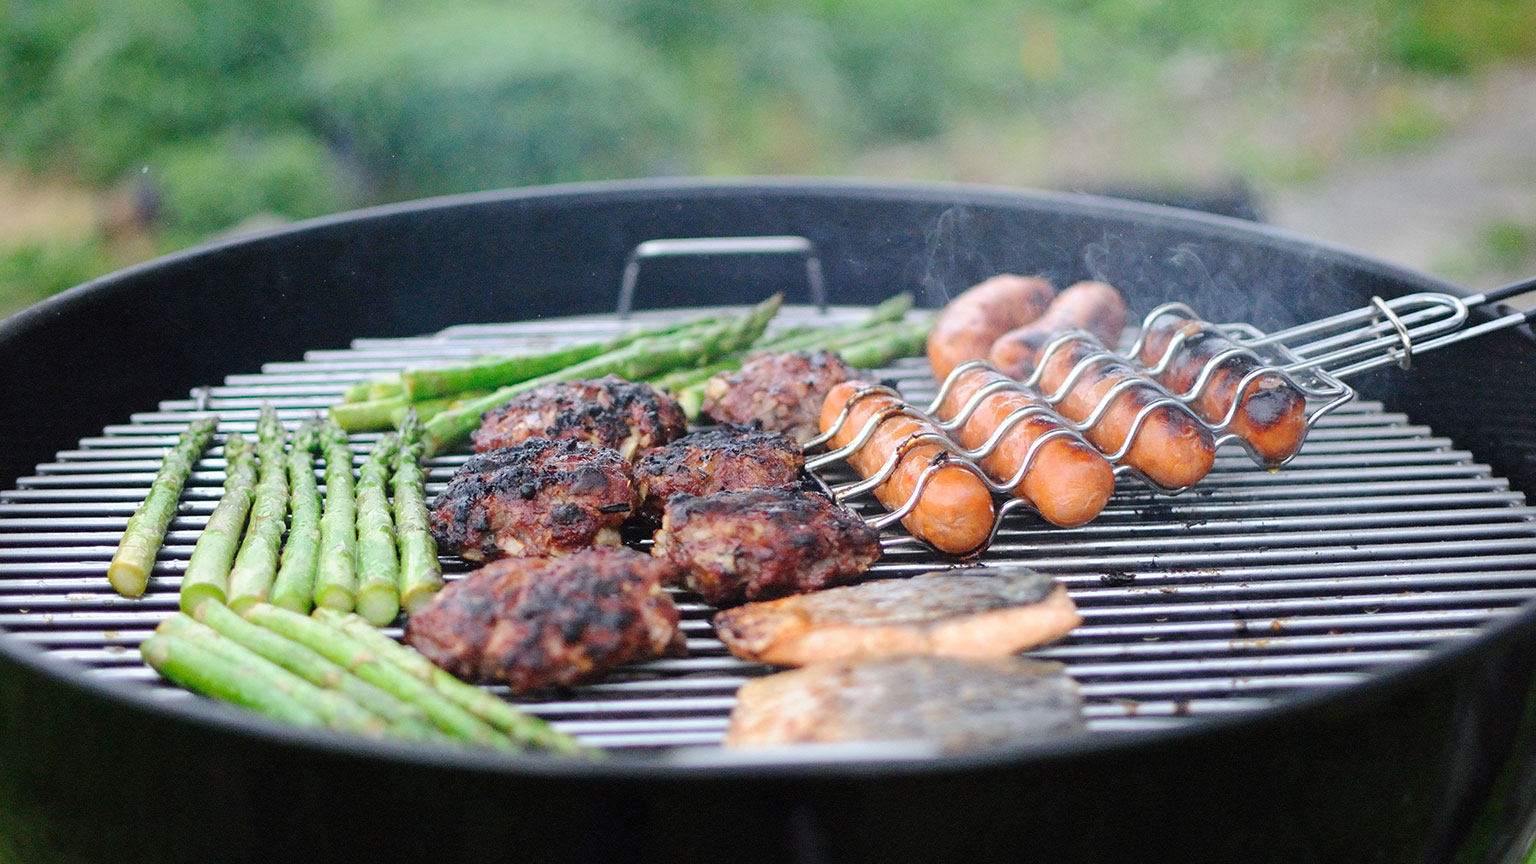 World of Food: Outdoor Grilling